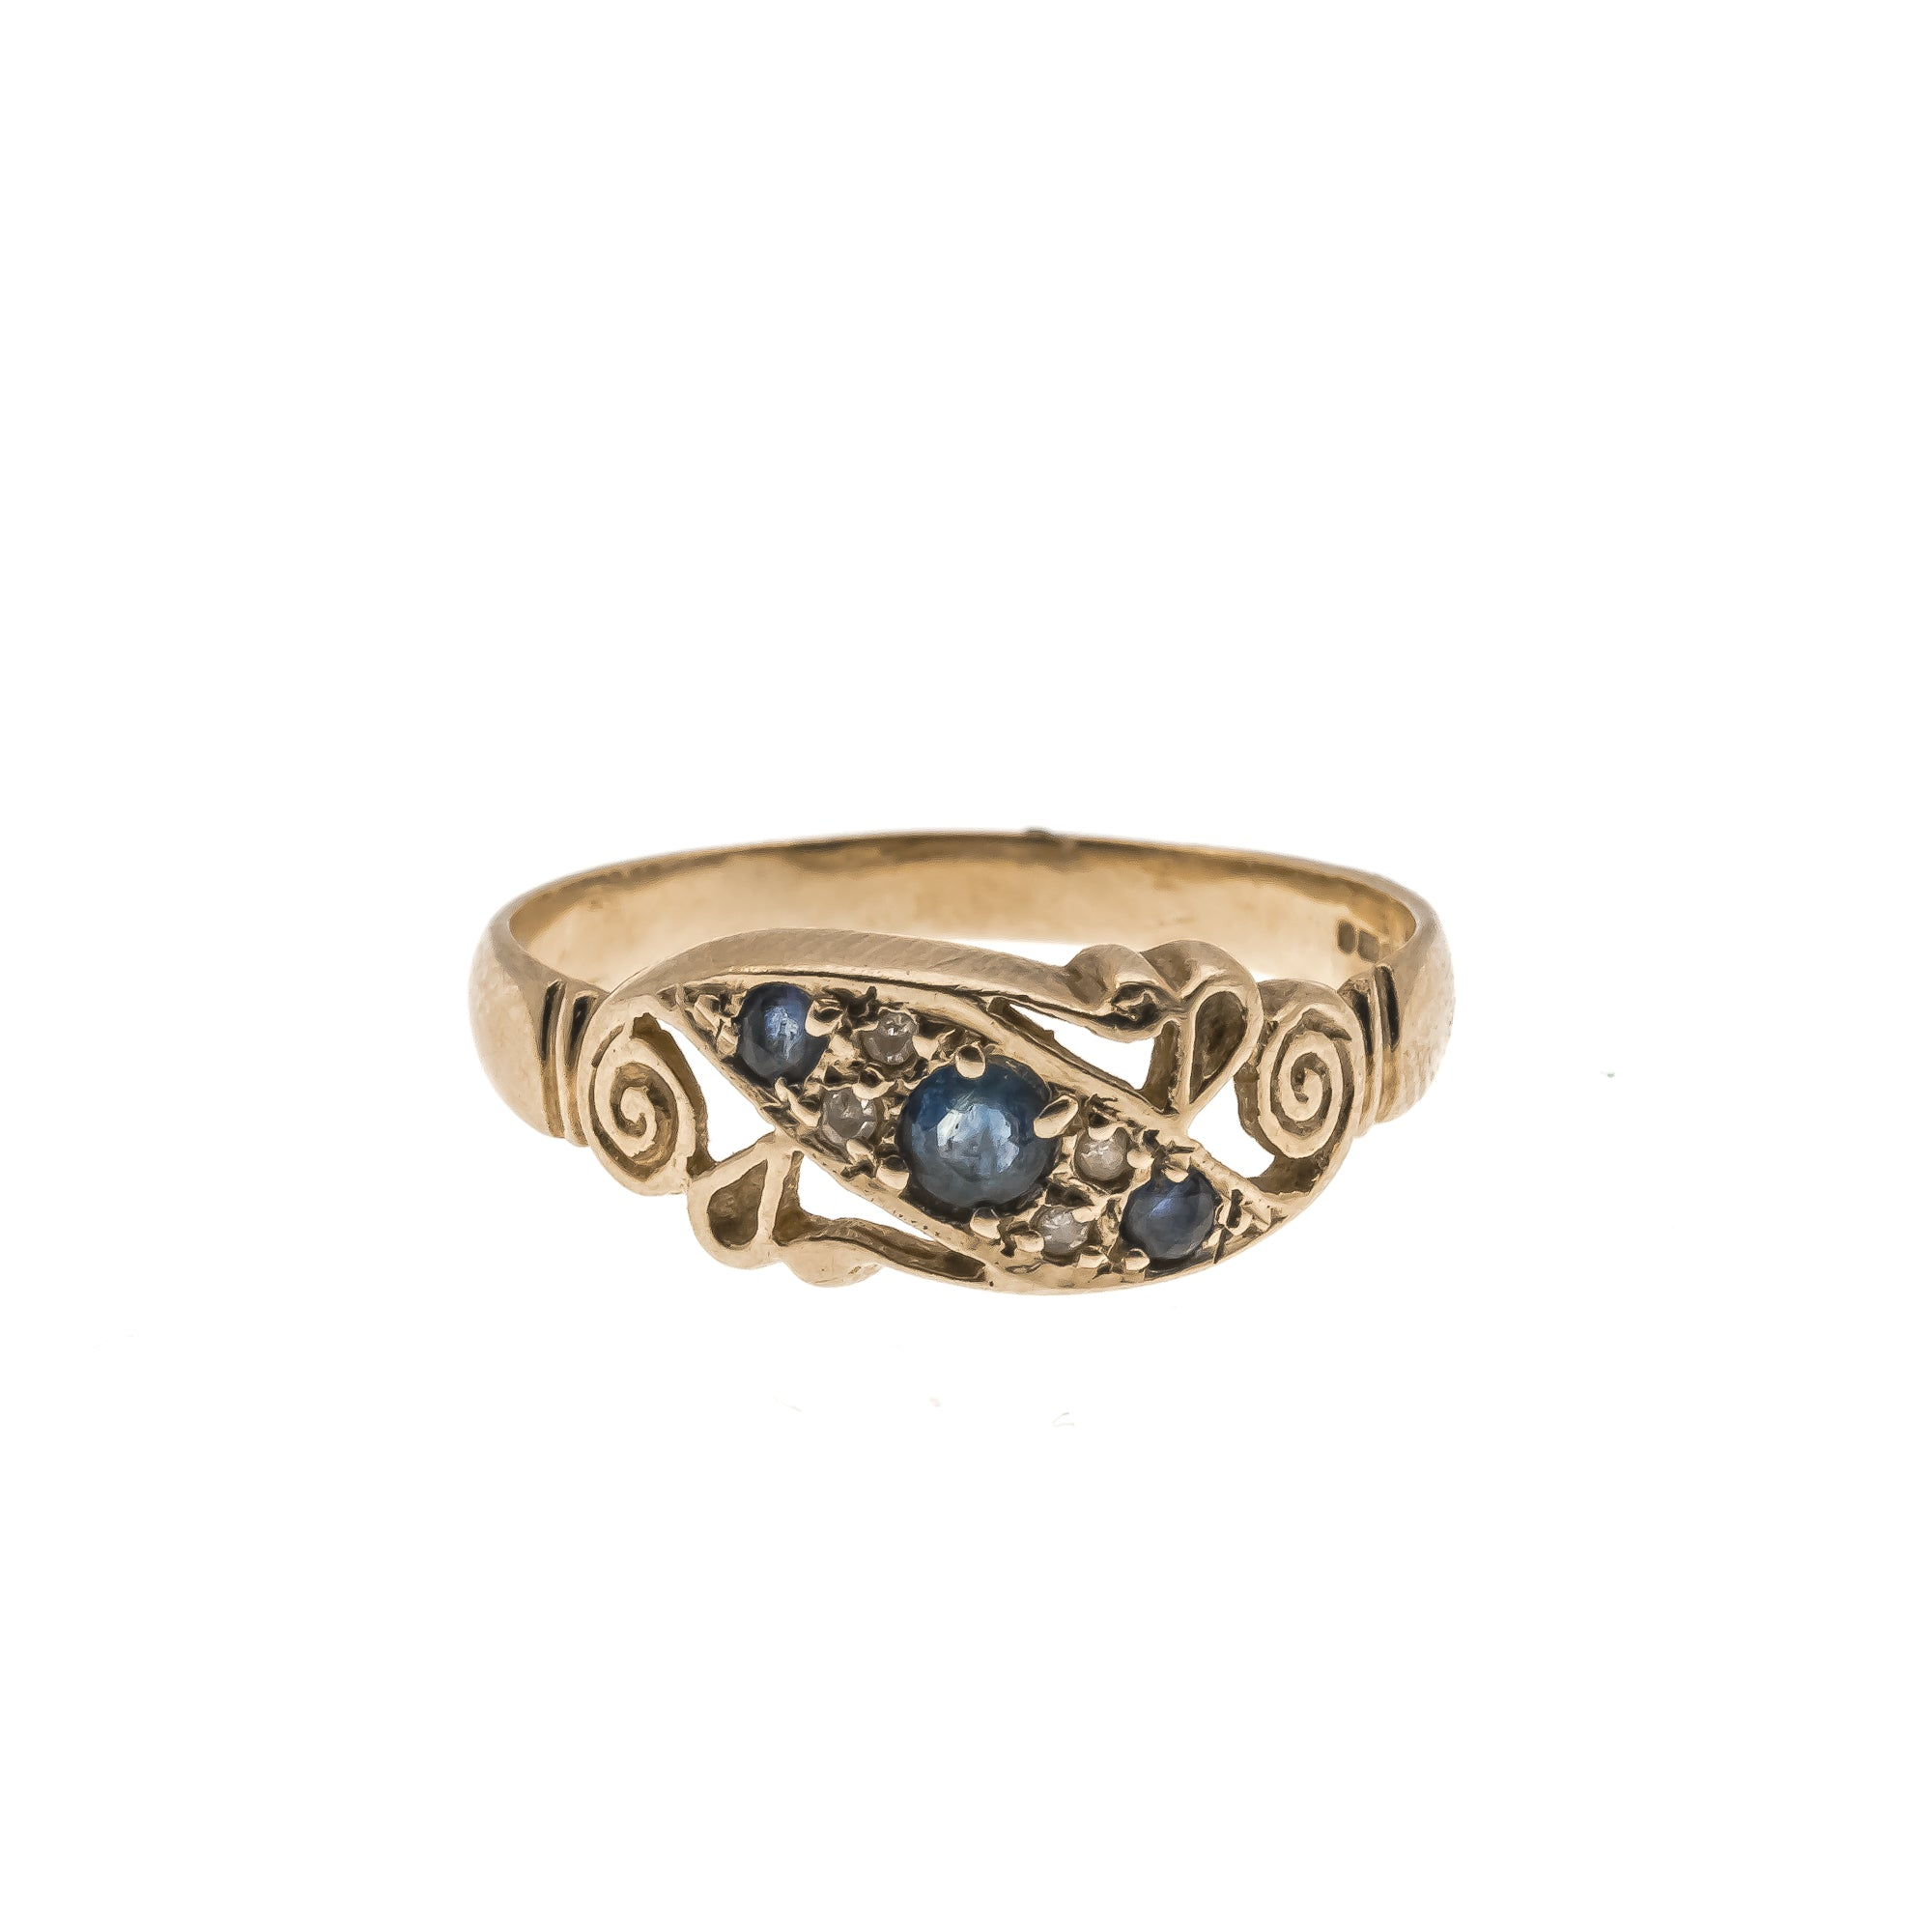 Diamonds, Sapphires & Scrolls ... Oh My - Vintage 9K Jewelled Ring (VR254)